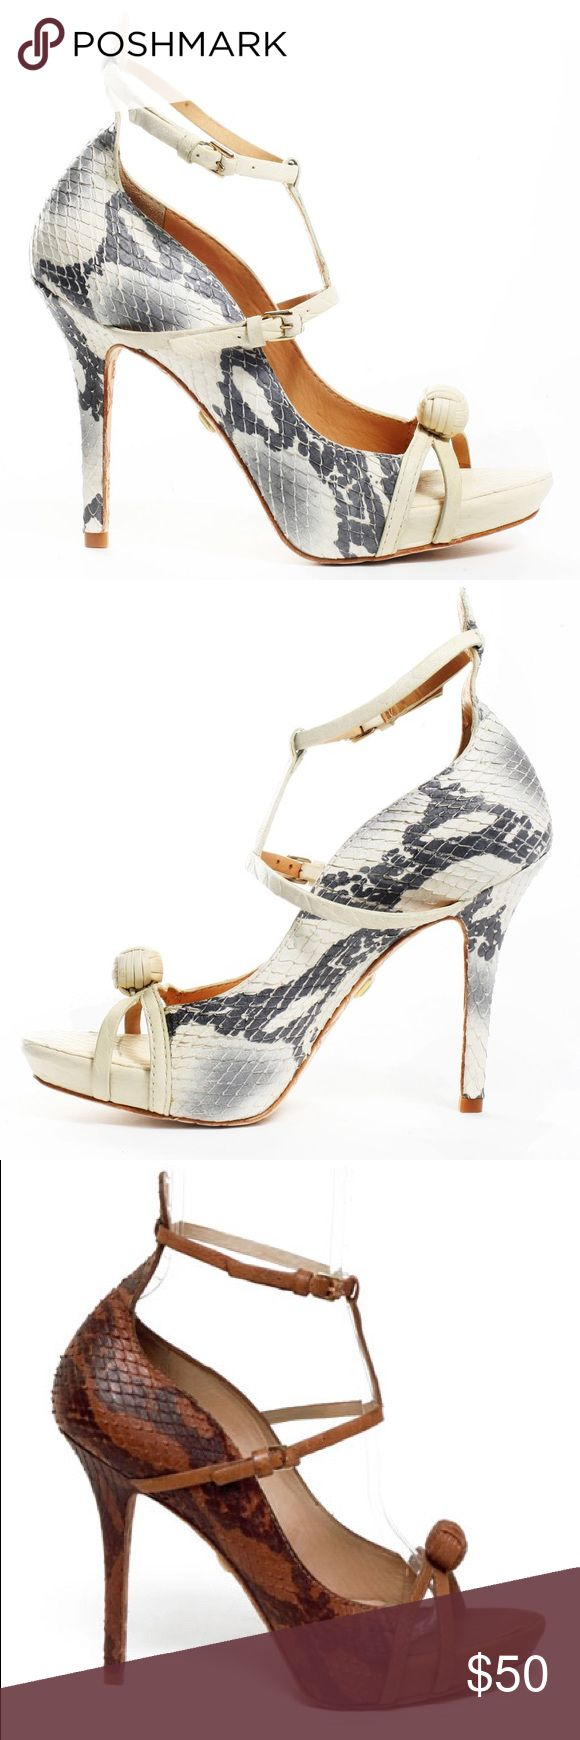 L.A.M.B. By Gwen Stefani Snakeskin-Embossed Heels LAMB By Gwen Stefani Heels in Brown. Size 6. Light wear on the bottom (soles). Great condition, overall. Hardly worn. Easy to walk in, IMO. Neutral & Edgy. LAMB Shoes Heels